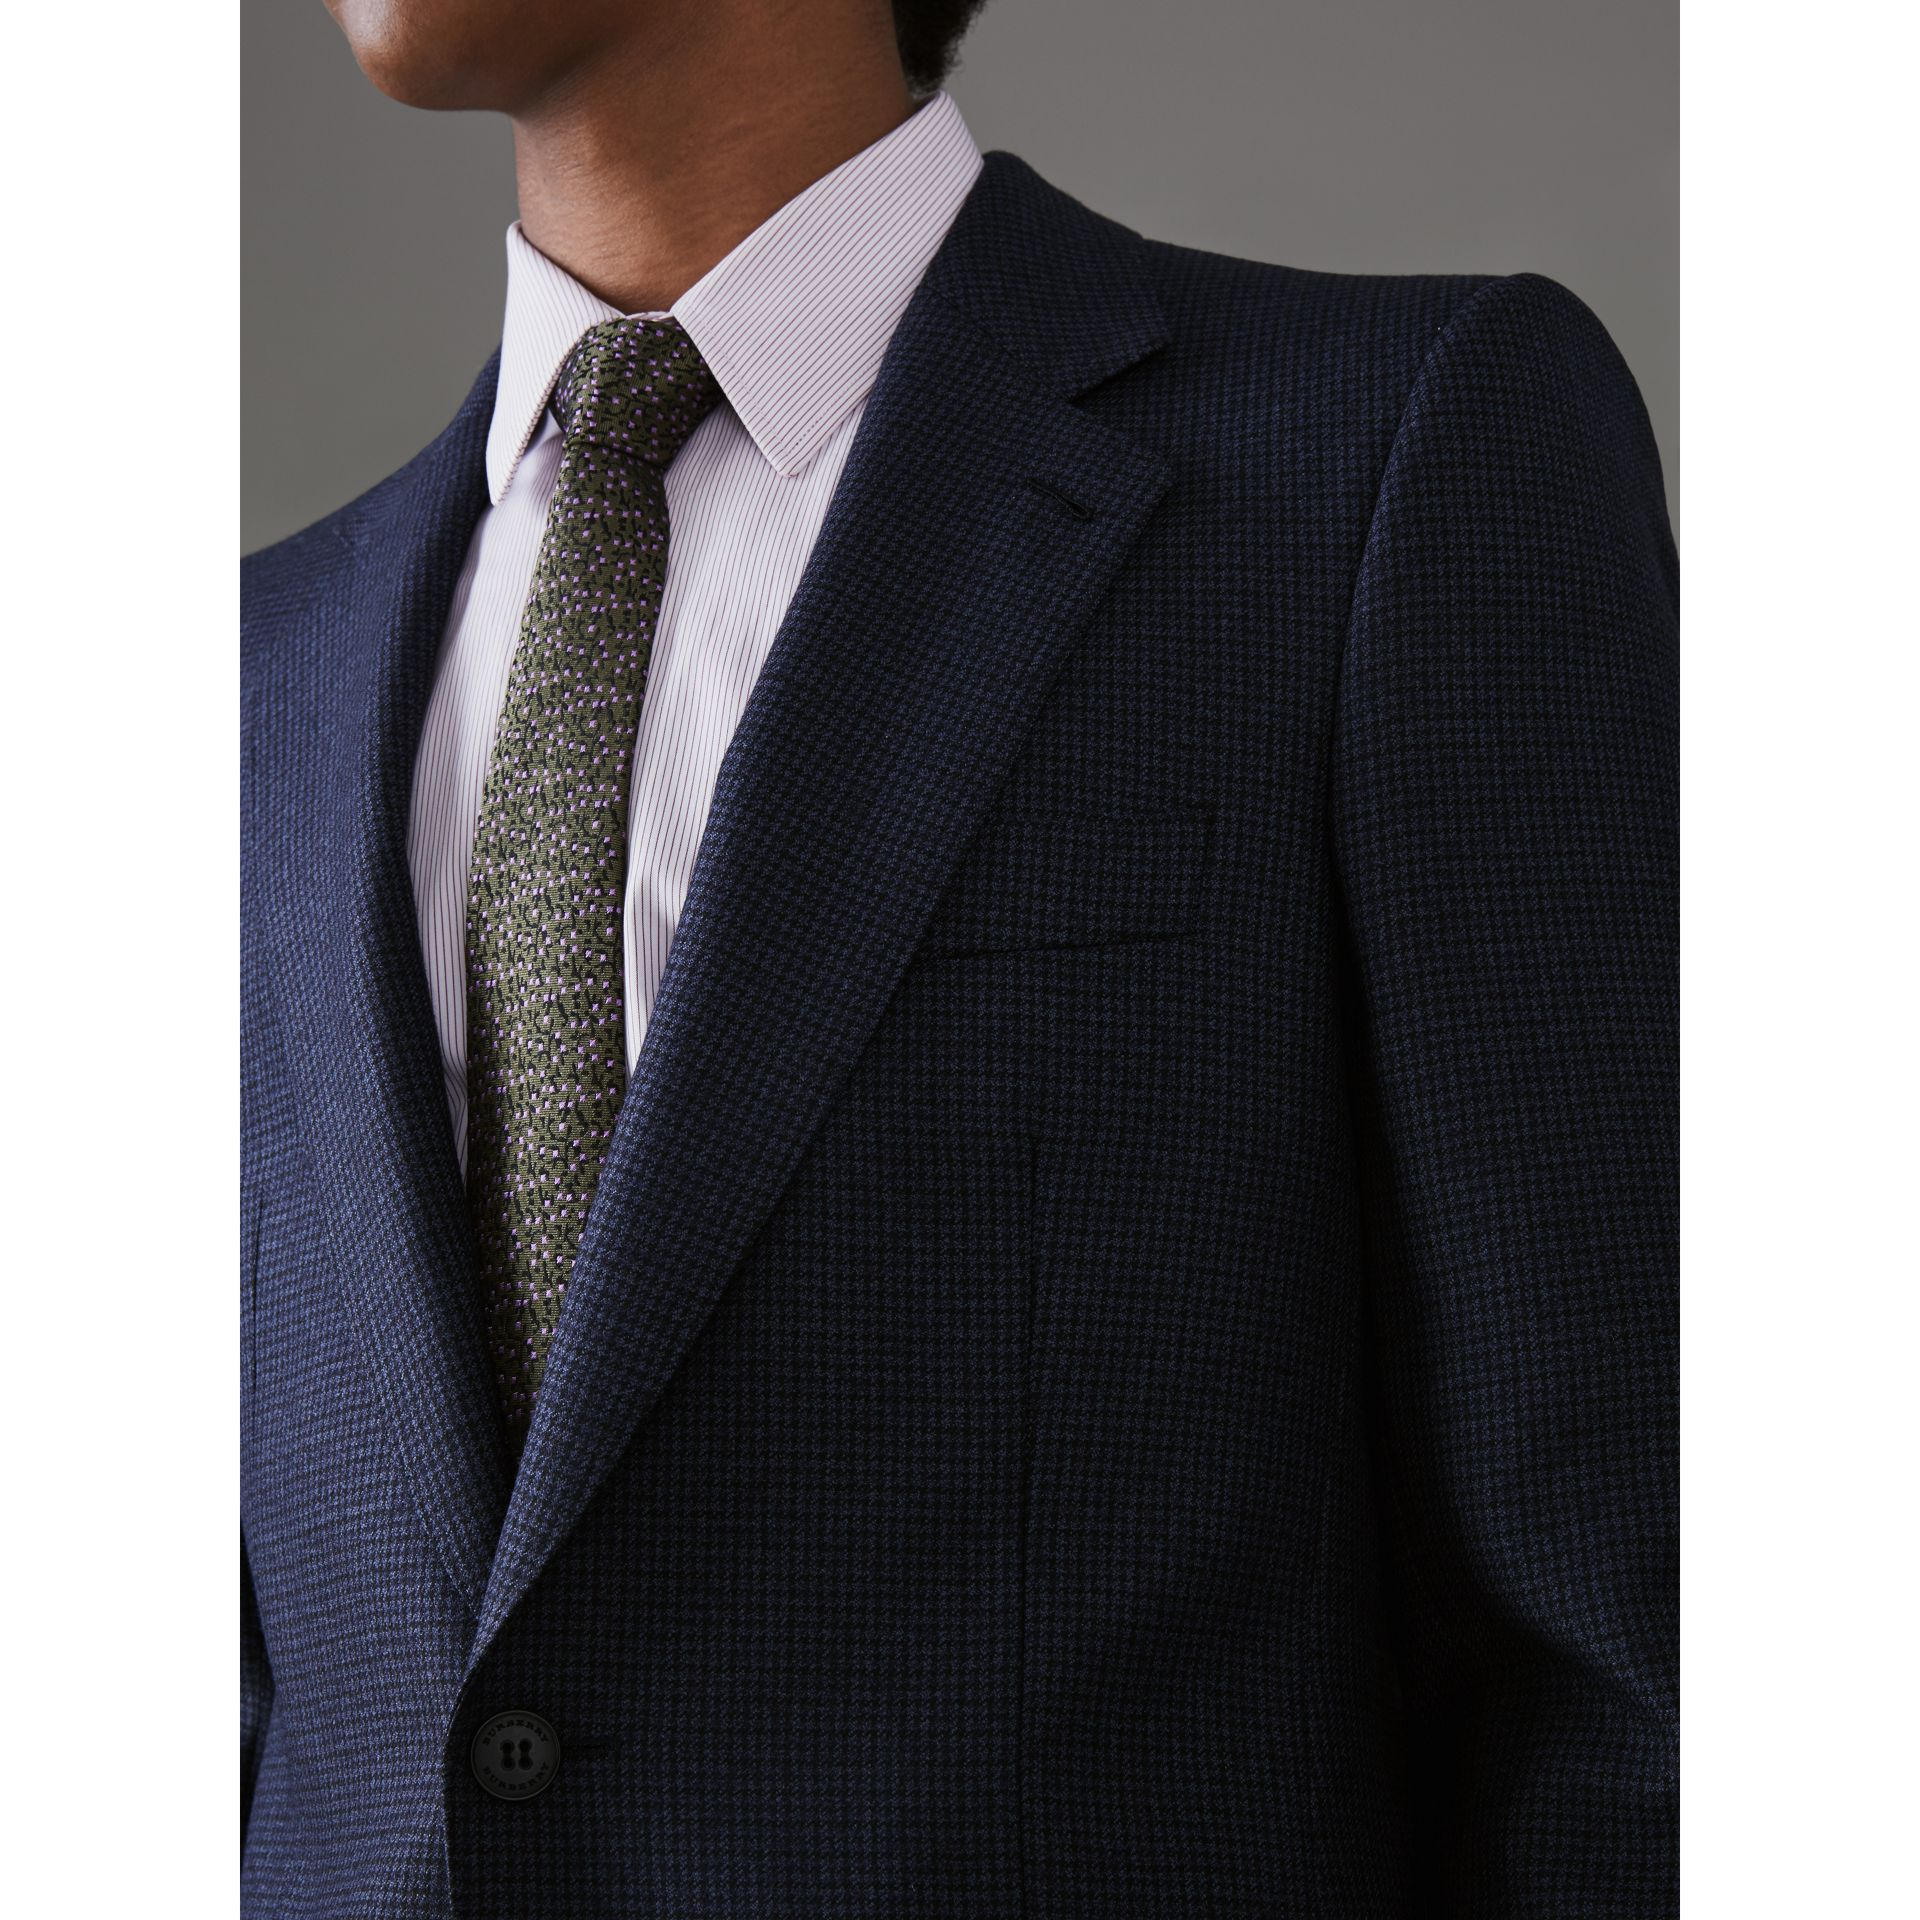 Slim Fit Puppytooth Wool Suit in Navy - Men | Burberry United Kingdom - gallery image 1